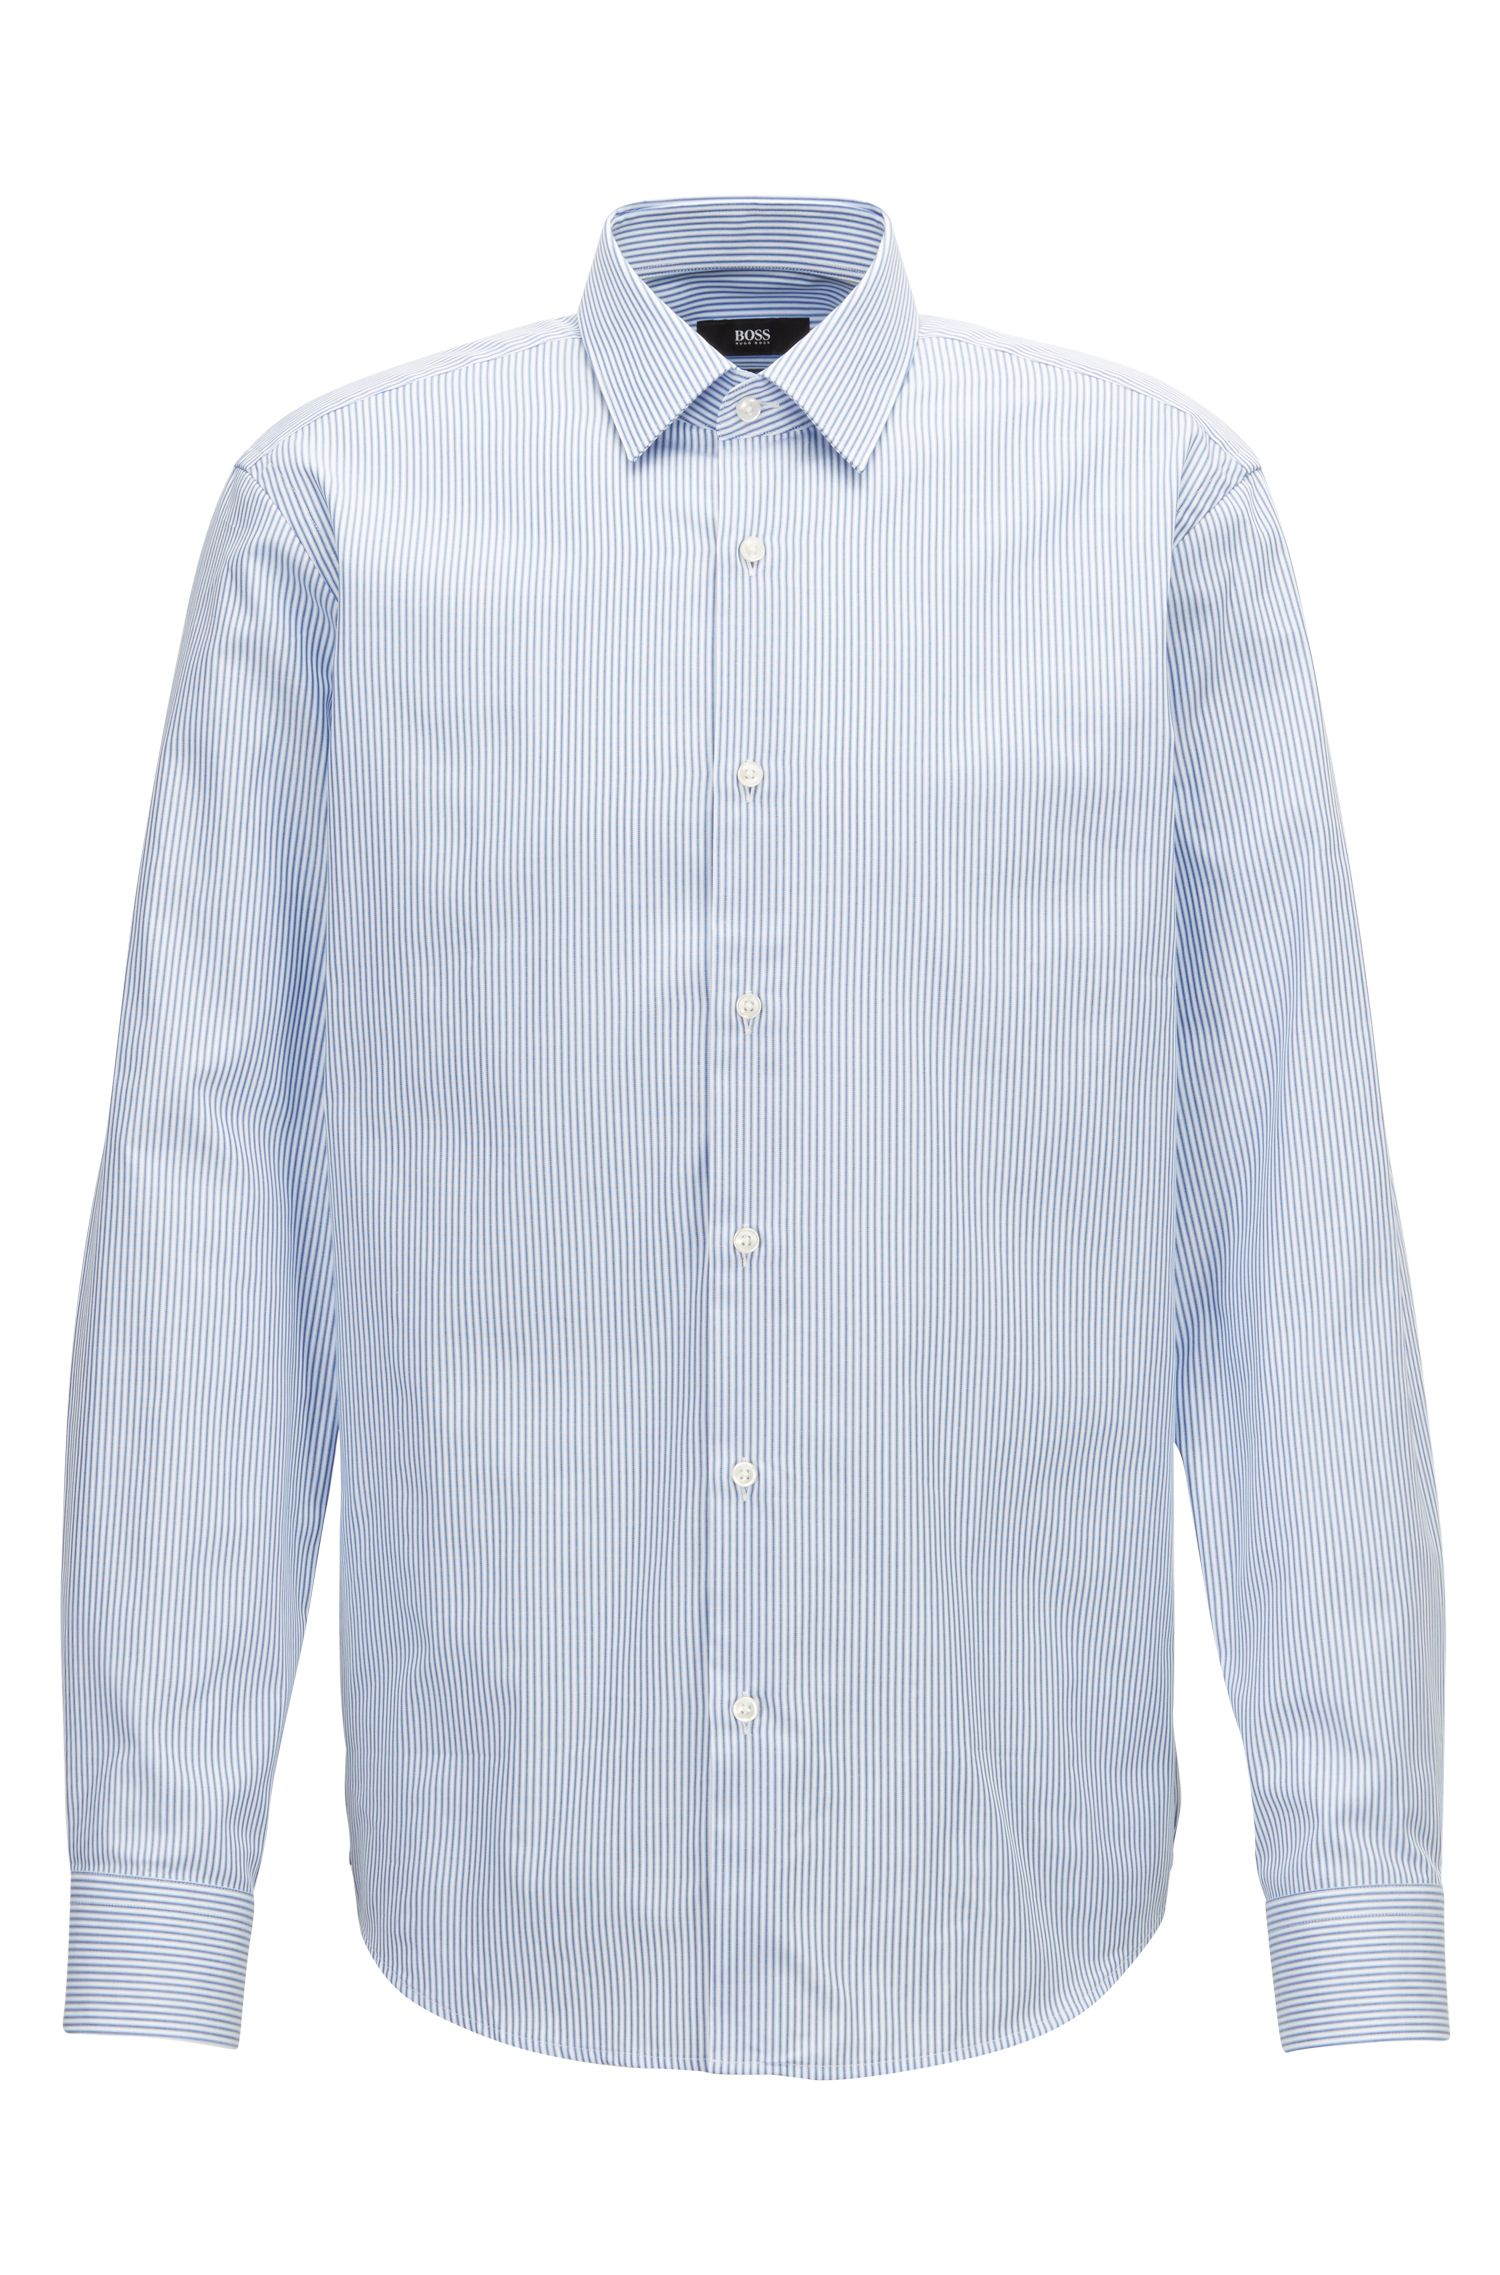 Two-color striped shirt in pure Oxford cotton